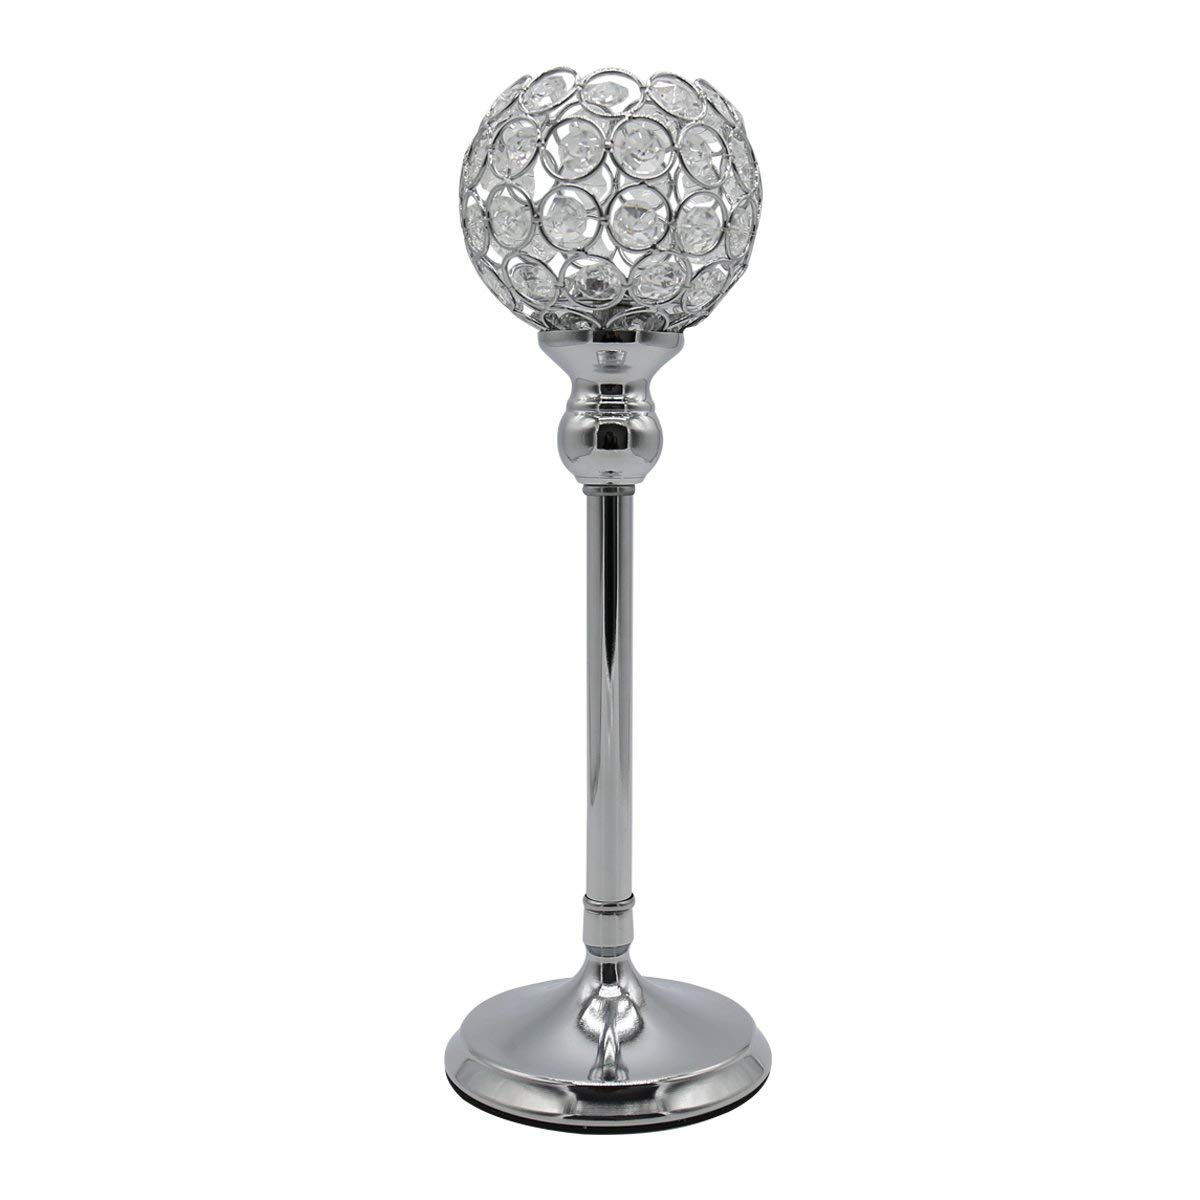 Get Quotations Joynest Crystal Candle Holders Coffee Table Decorative Centerpiece Candlesticks Set For Dining Decorations Gifts